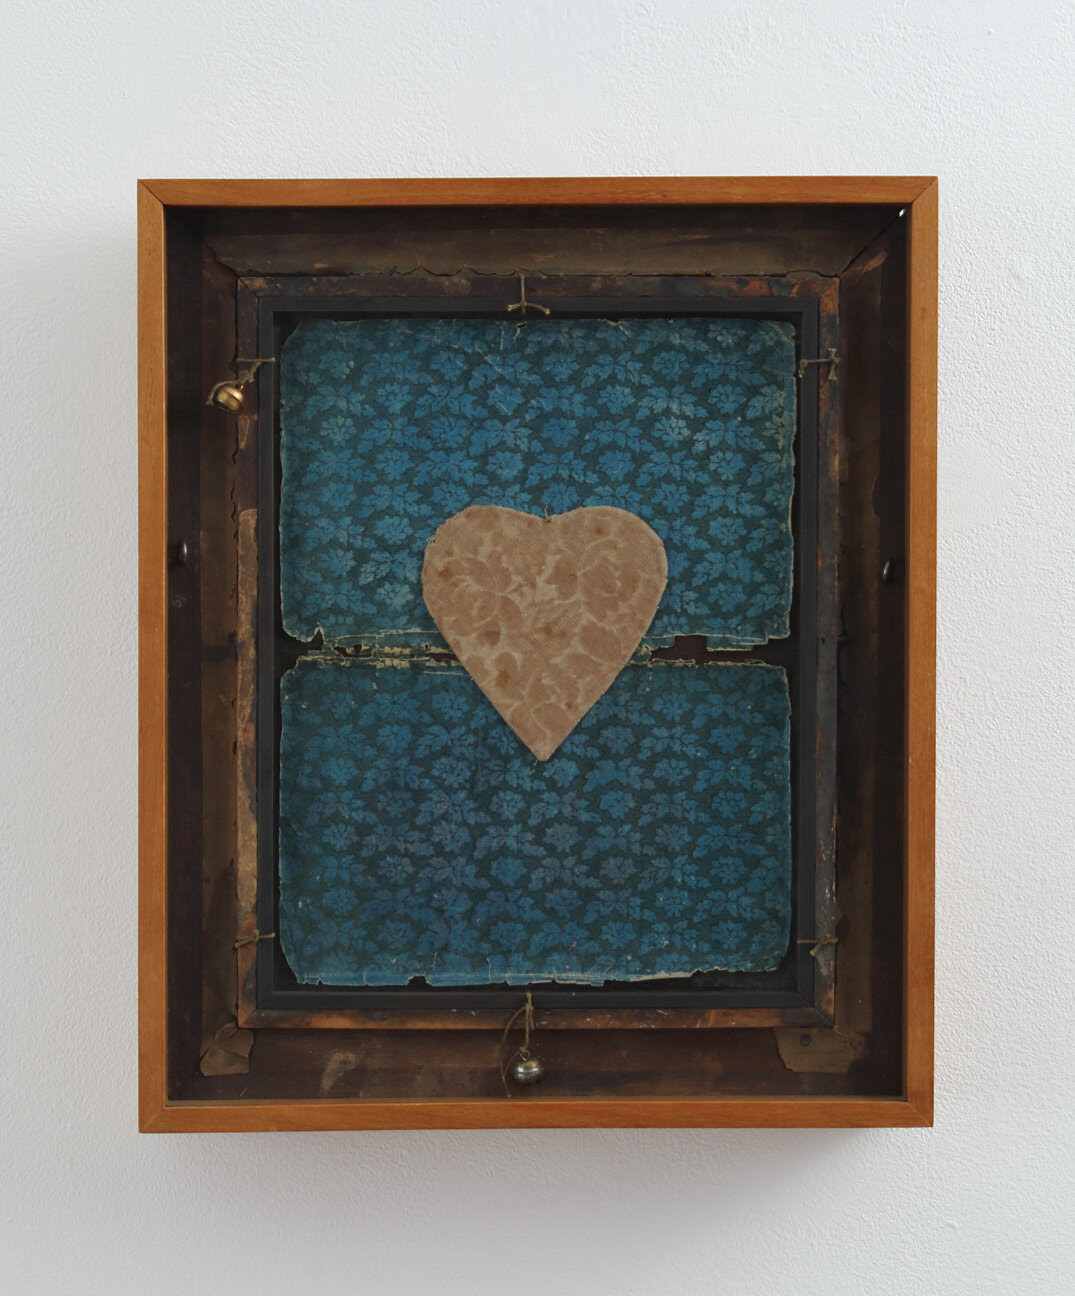 Valentine, 1986, mixed media construction, 15 3/8 x 12 7/8 x 2 5/8 inches